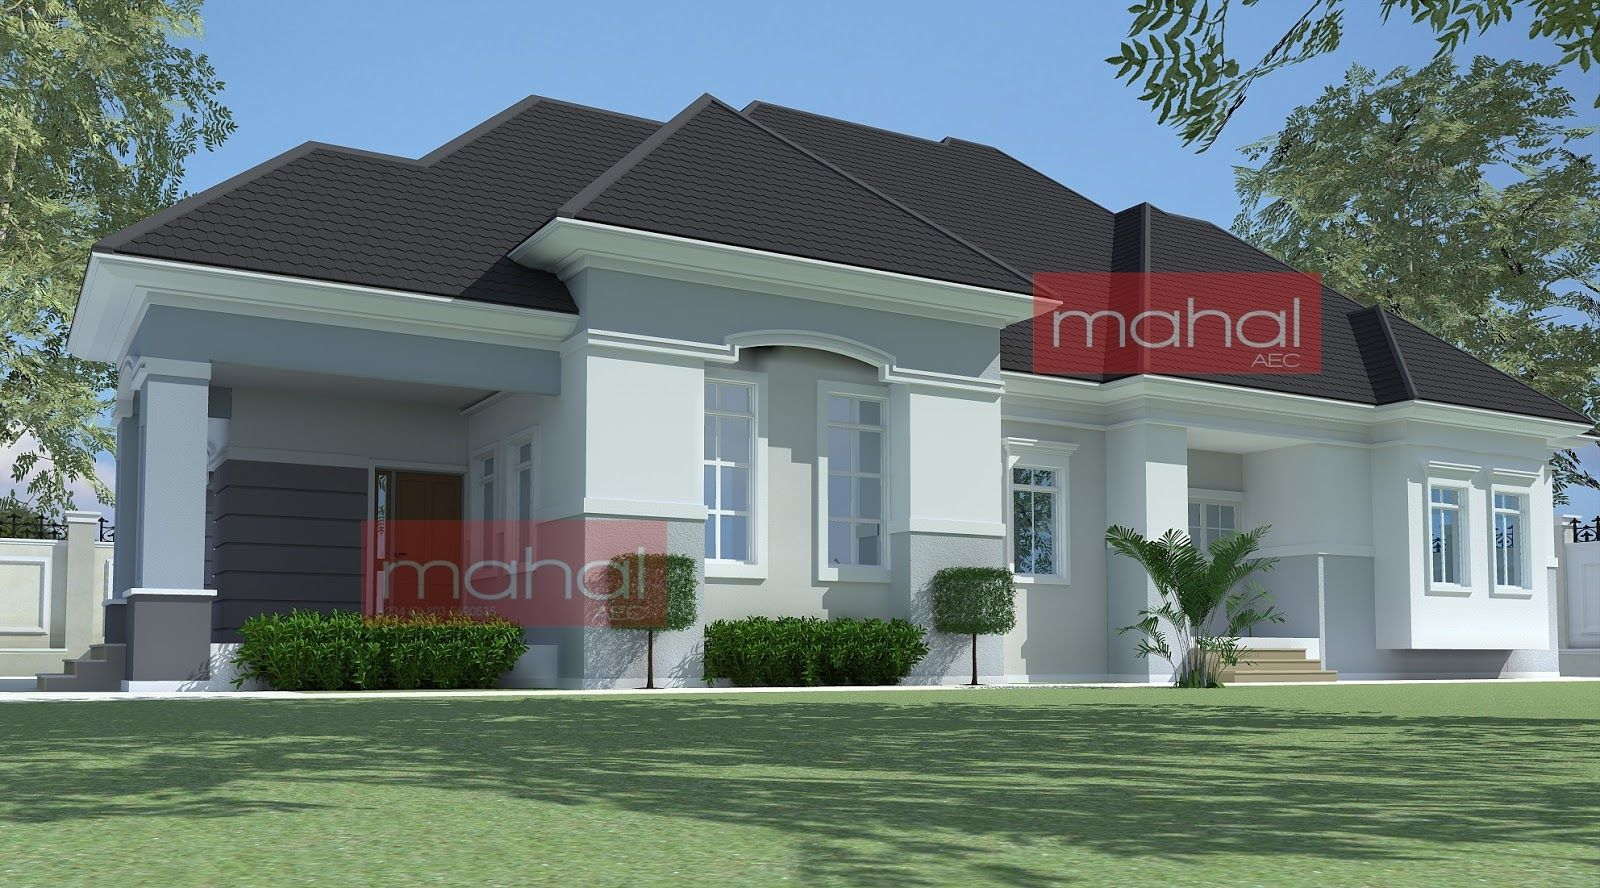 4 bedroom bungalow plan in nigeria 4 bedroom bungalow for Purchase house plans